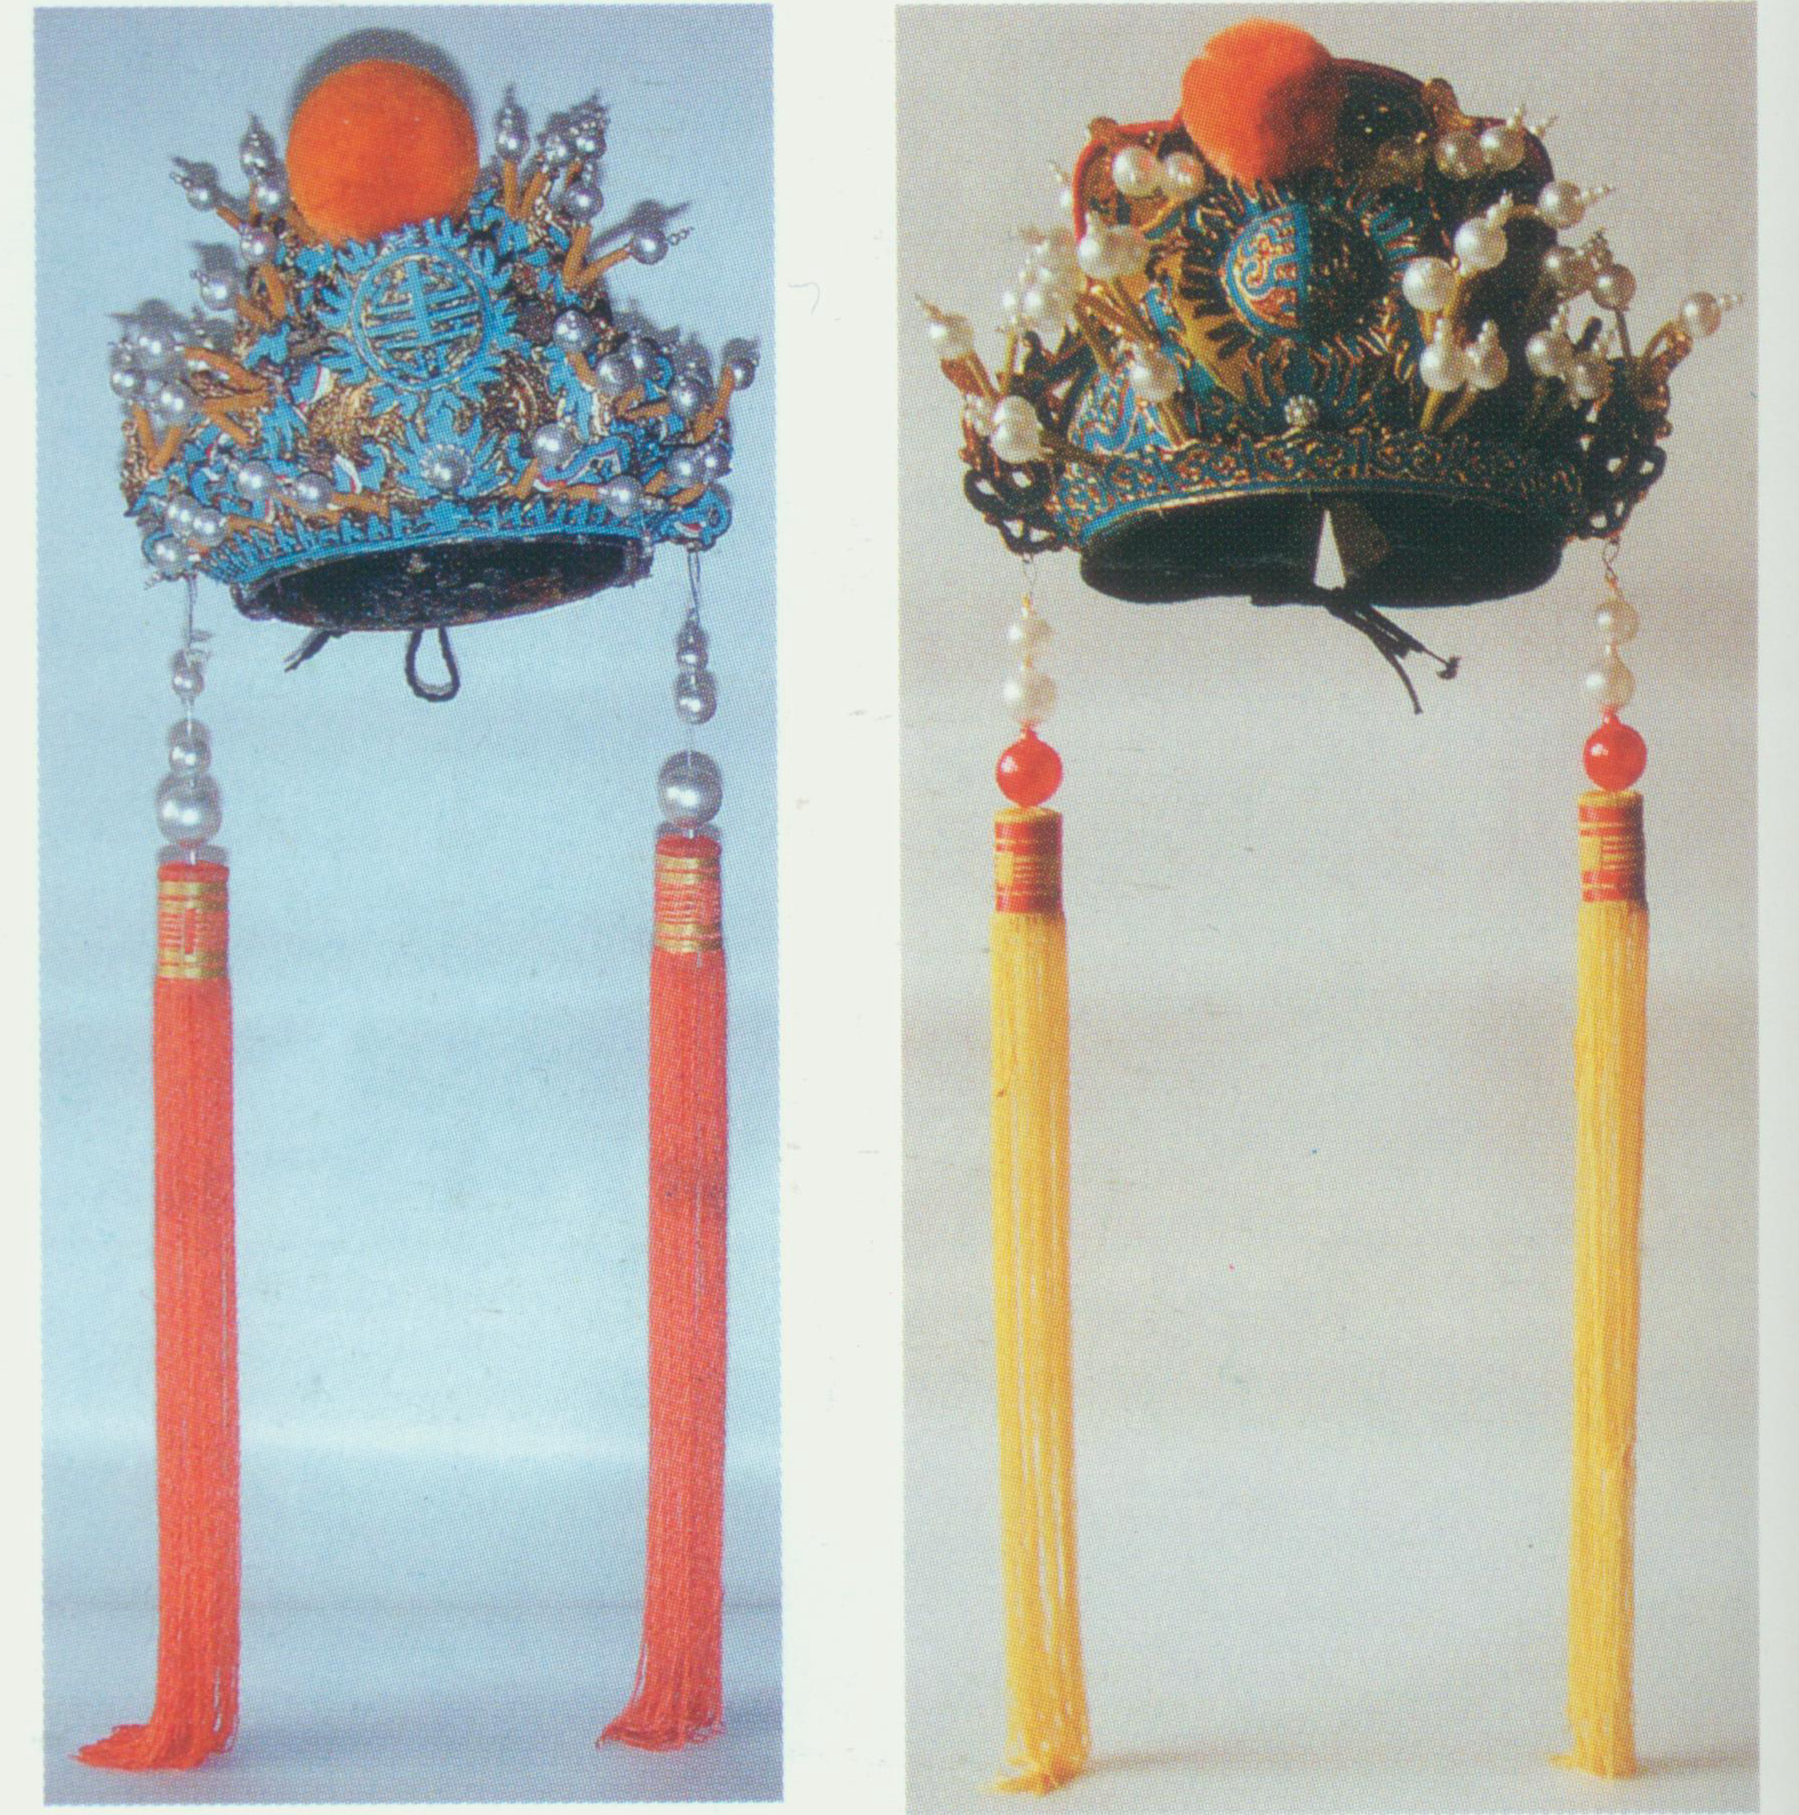 """Nine-Dragon Crown    A rigid helmet, also known as """"Jade Cicada Crown"""". The crown is fringed with half- ruyi  (an S-shaped jade ornament symbolizing good luck) or small cloud patterns. There is a round warped- shou  (a Chinese character meaning longevity) encircled by flames and a big apricot velvet ball at the frontal center. Nine dragons in total are attached to the crown—three pairs dragons at the sides, a pair of coiling dragons, and a pair of dragons heading downwards, hence its name """"Nine-Dragon Crown"""". There are also some strings of beads and tassels on both sides. Only the emperor can wear this crown."""